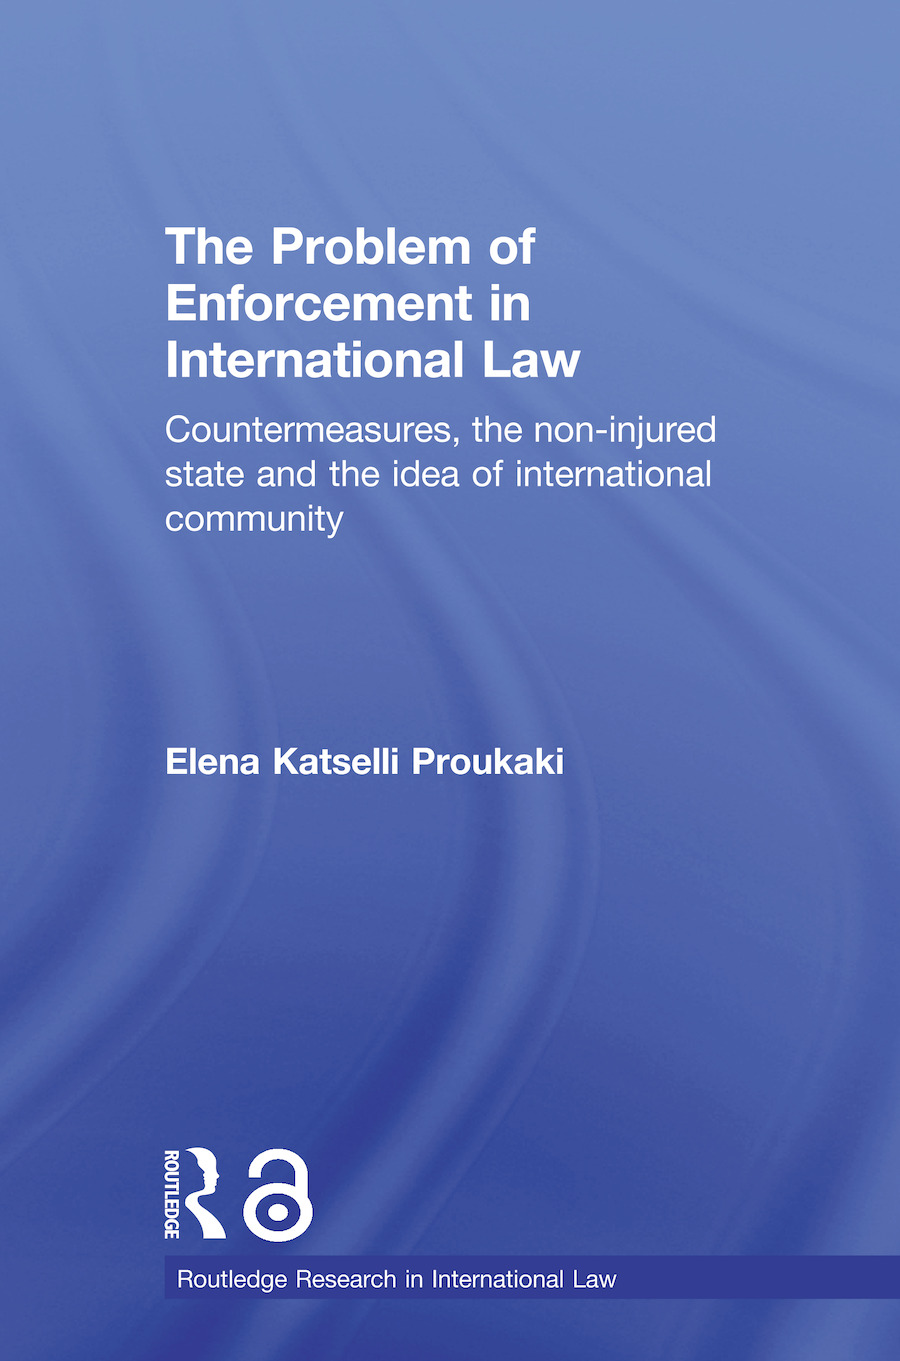 The Problem of Enforcement in International Law: Countermeasures, the Non-Injured State and the Idea of International Community book cover